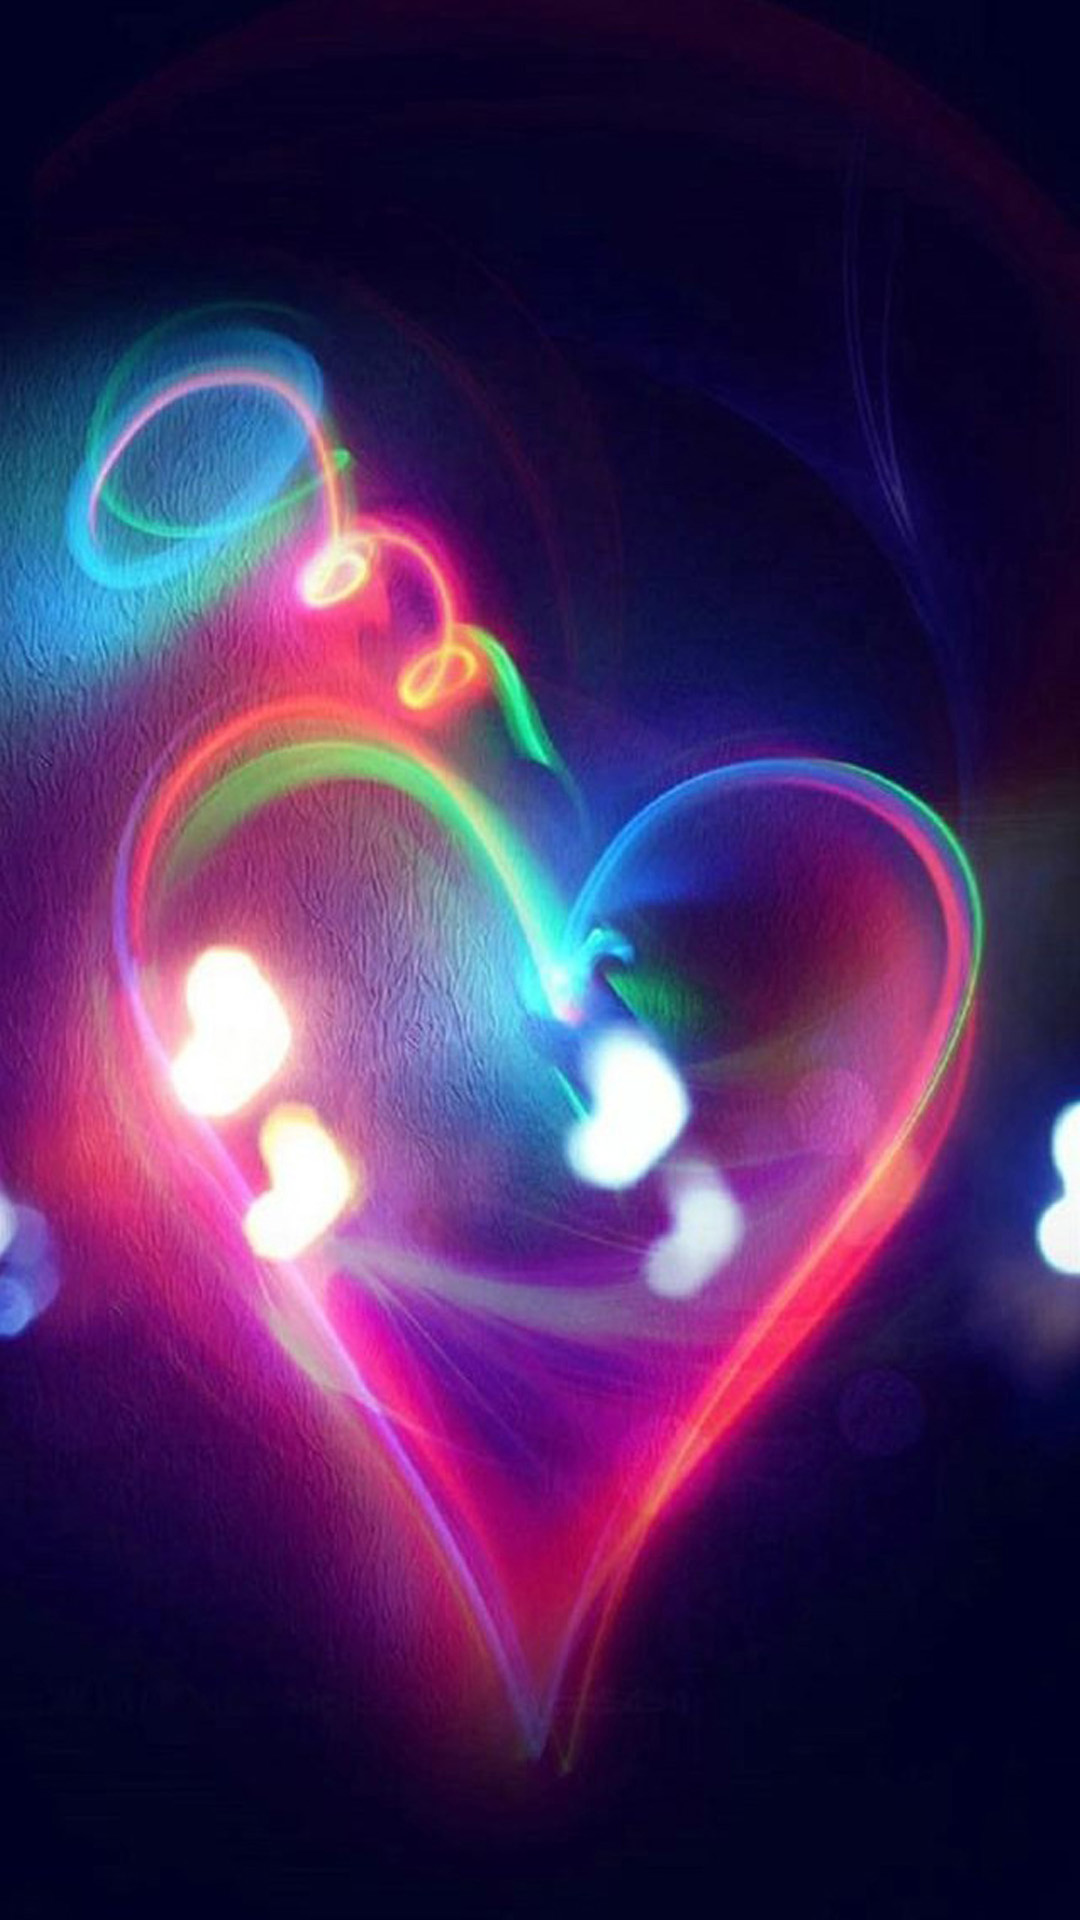 Free Download Love Galaxy S5 Wallpapers 37 Samsung Galaxy S5 Wallpapers Hd 1080x1920 For Your Desktop Mobile Tablet Explore 54 Galaxy Love Wallpapers Galaxy Love Wallpapers Galaxy Wallpaper Love Wallpapers